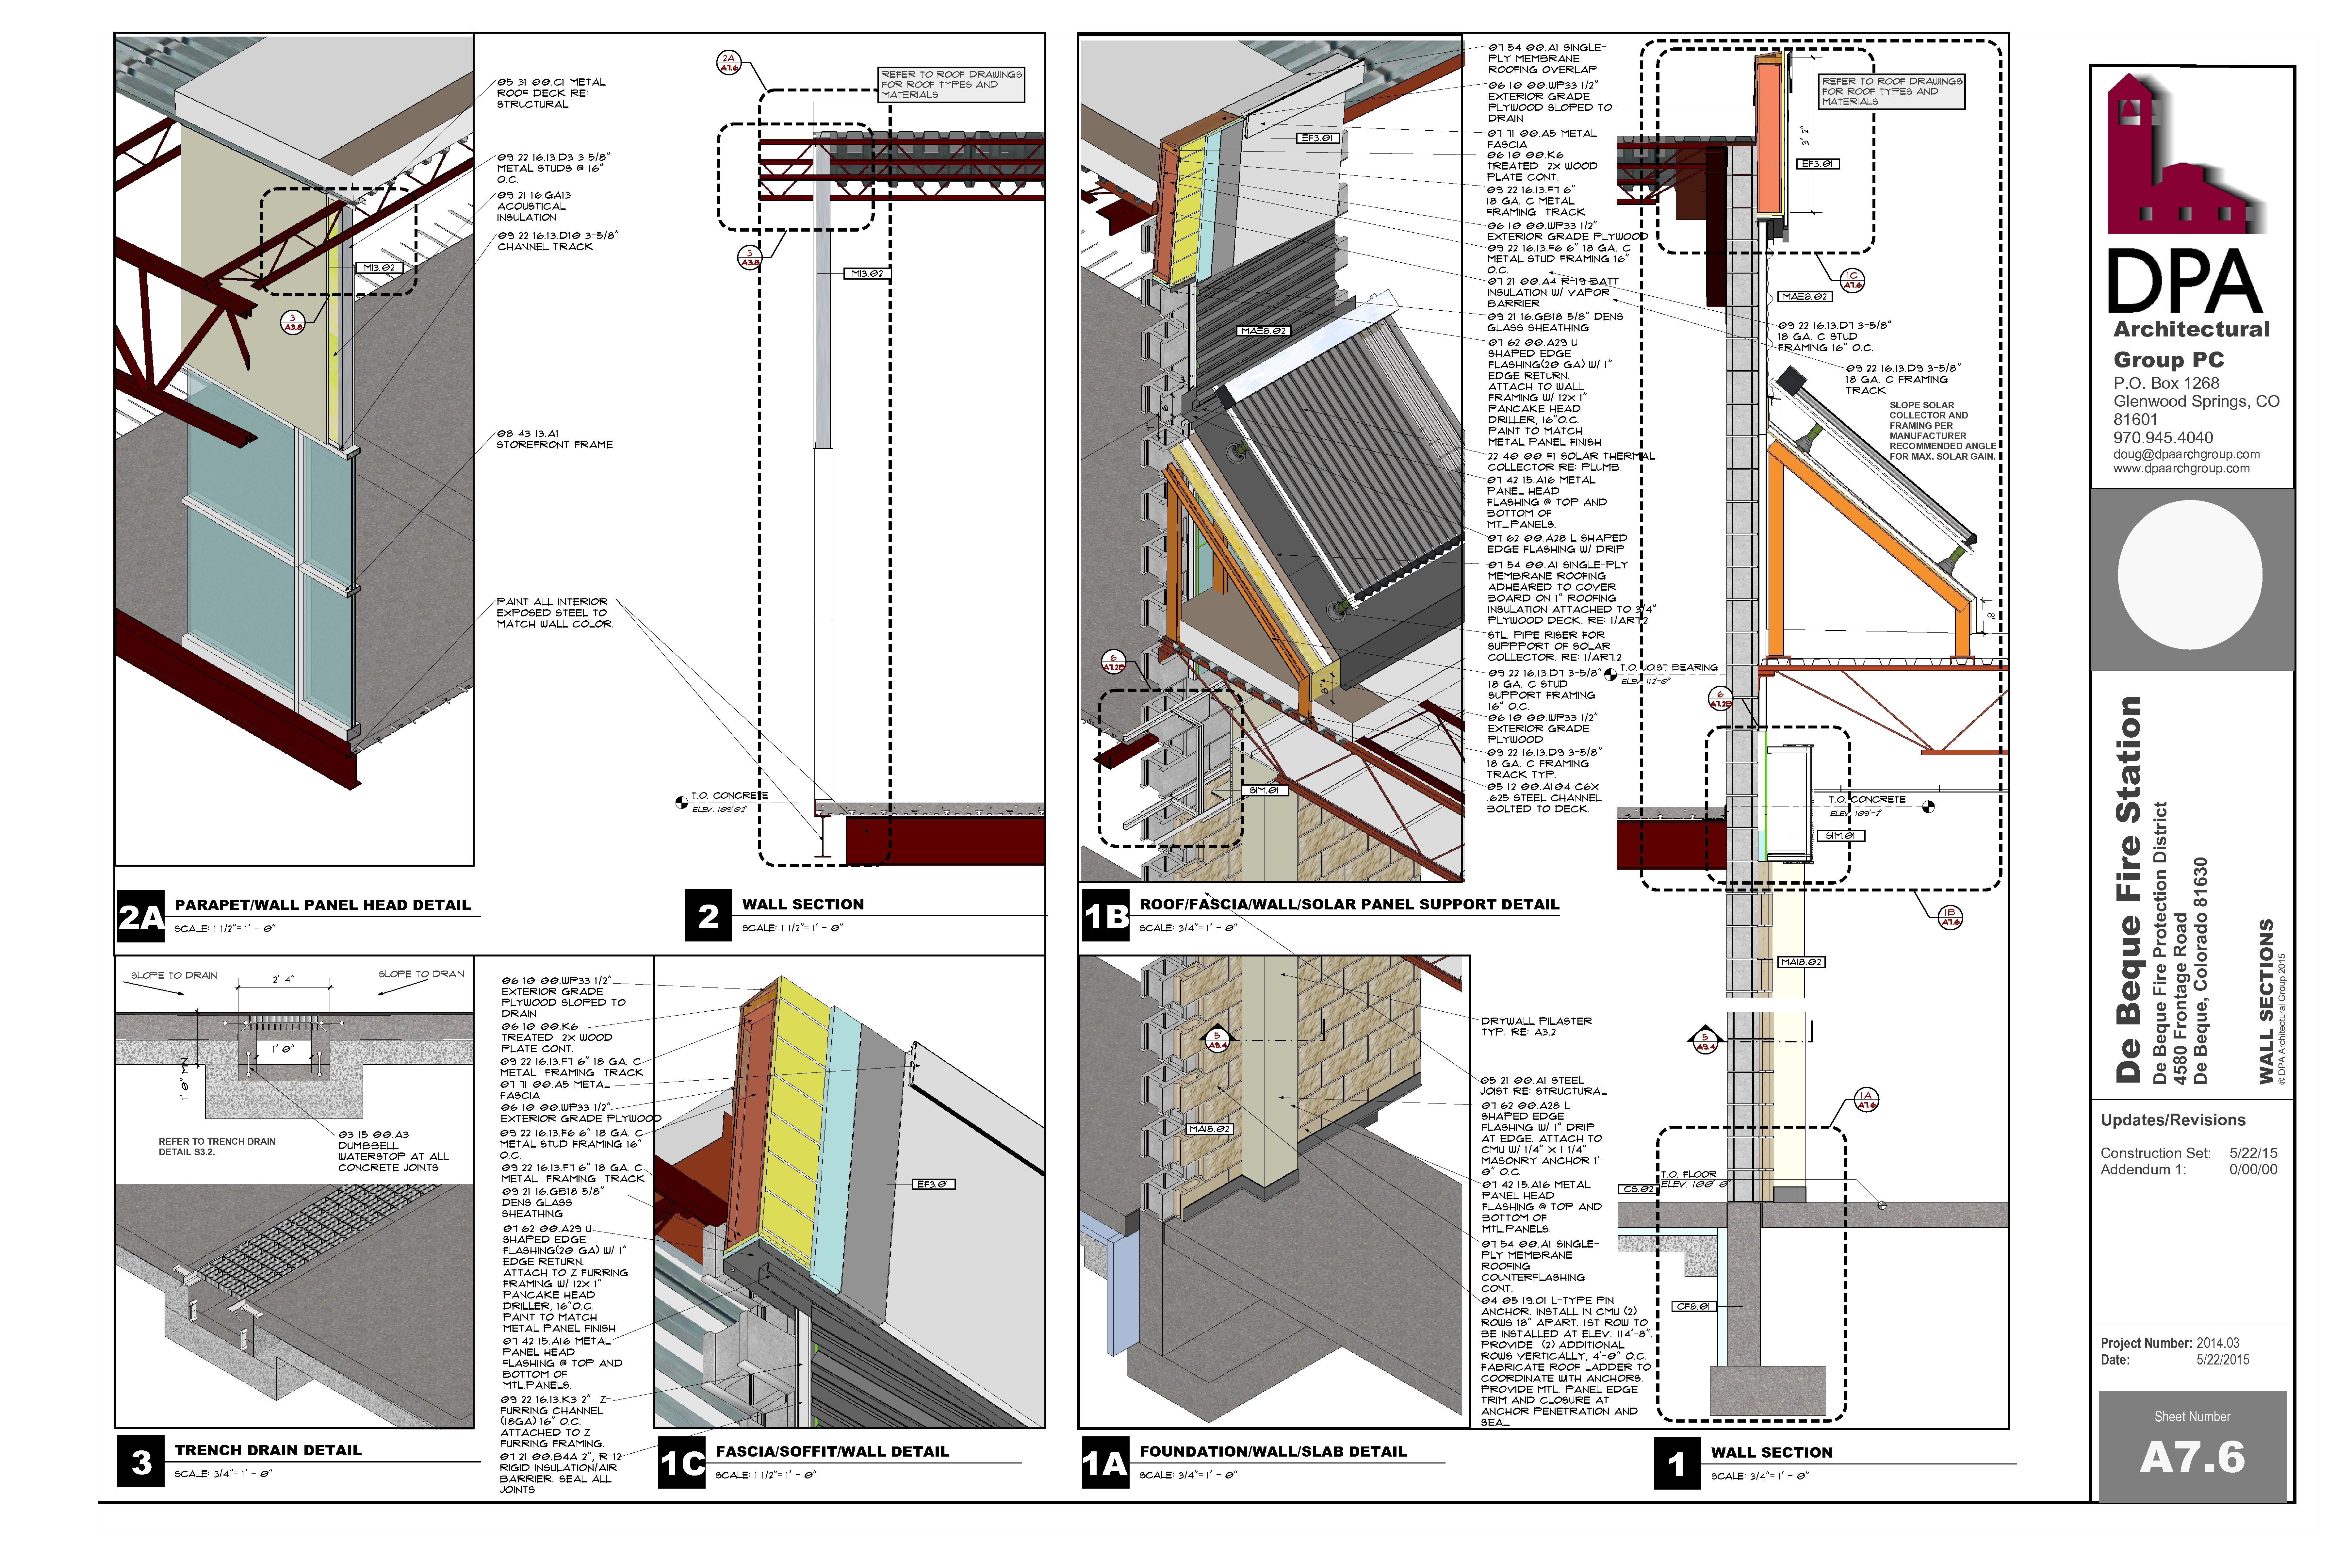 Fire Station Wall Section Developed In Sketchup And Layout Sketchup Pinterest Fire And Layout